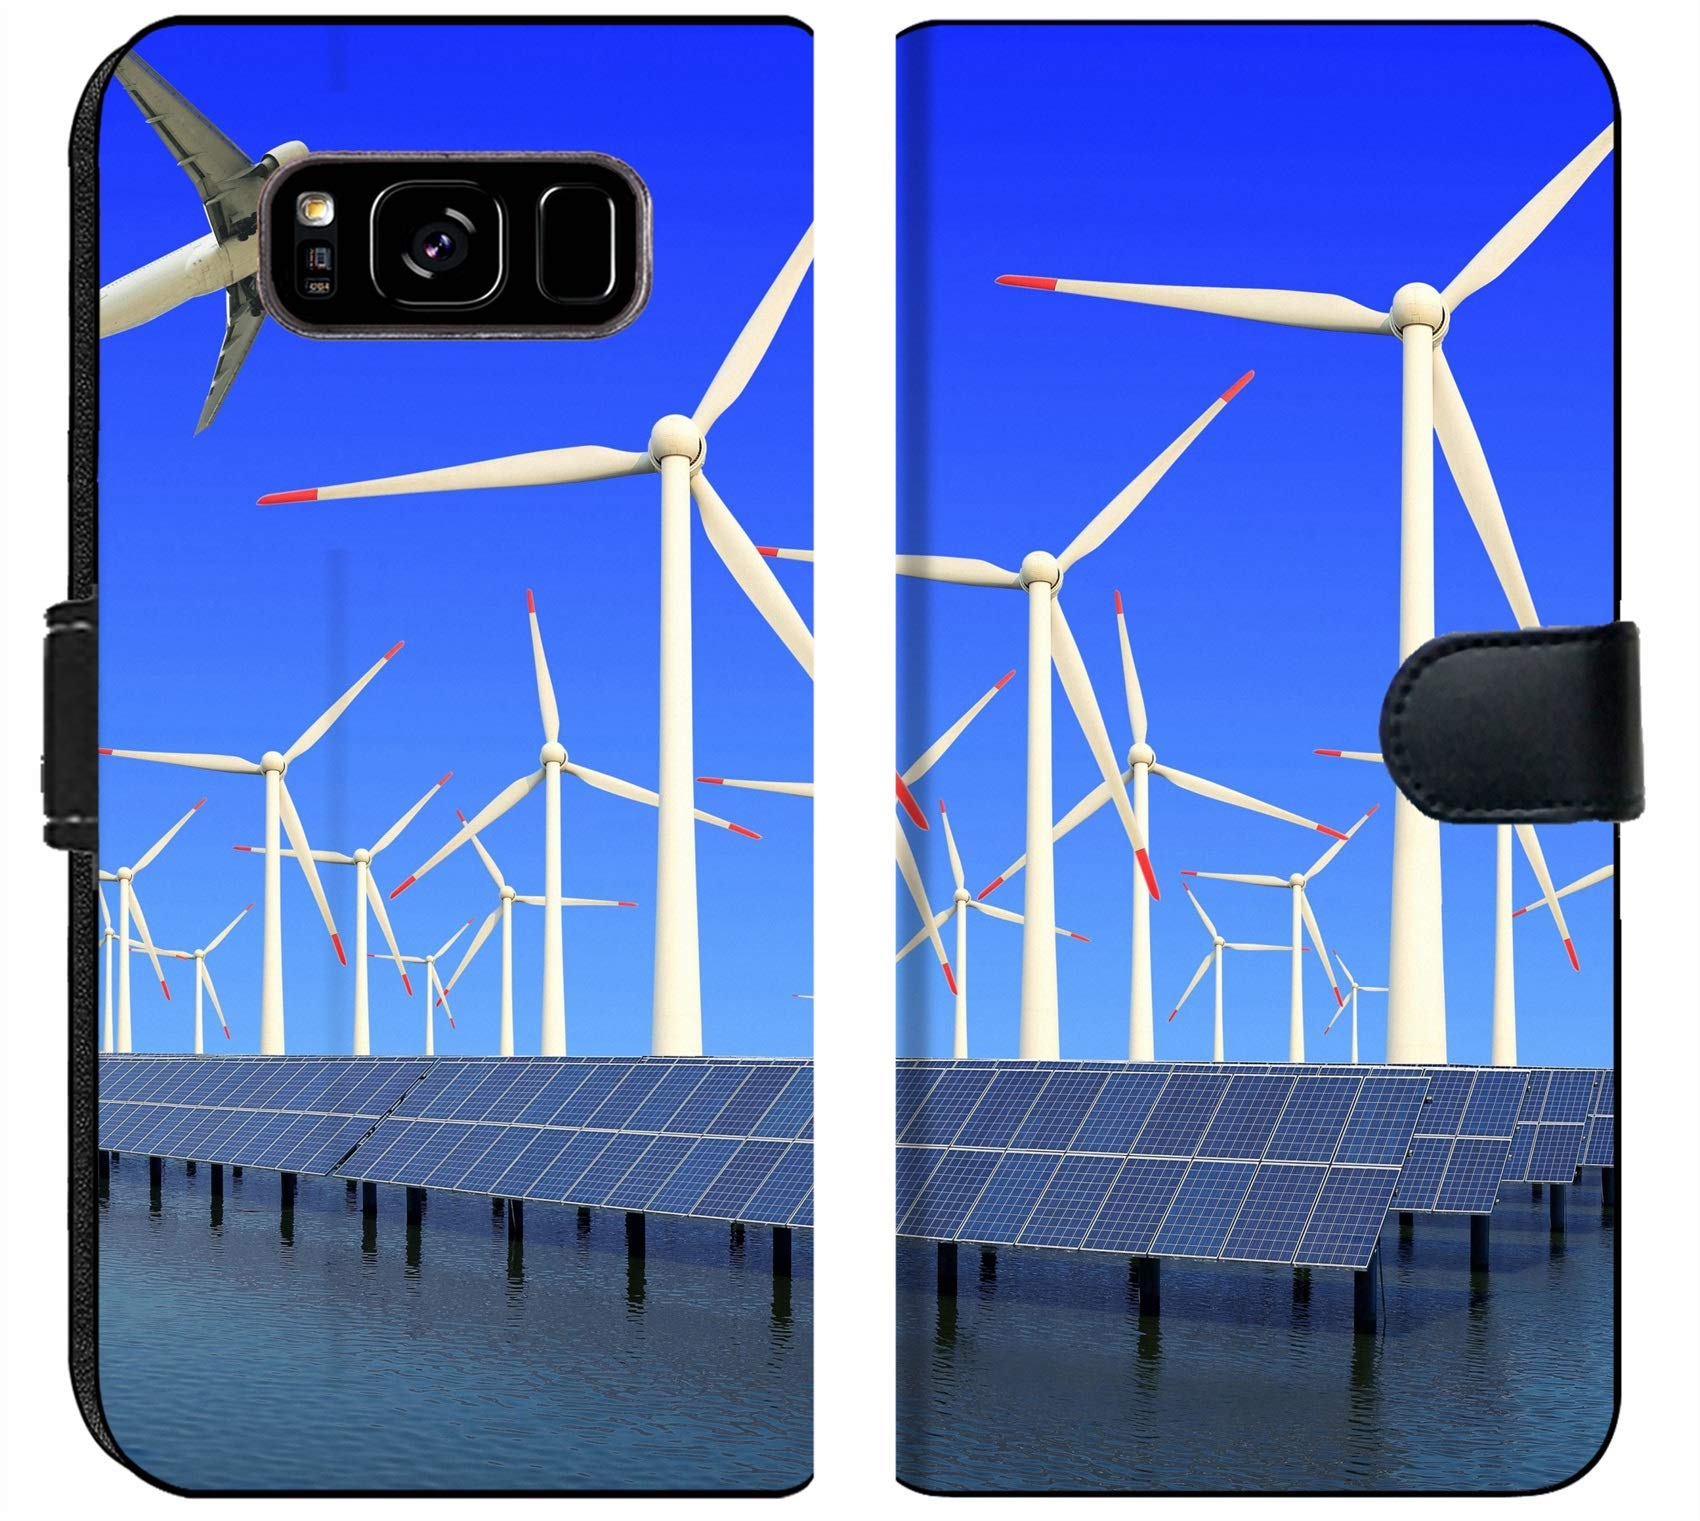 Samsung Galaxy S8 Plus Flip Fabric Wallet Case Image ID 19576484 Aircraft is Flying in eco Power Wind turbines Solar Panel at c